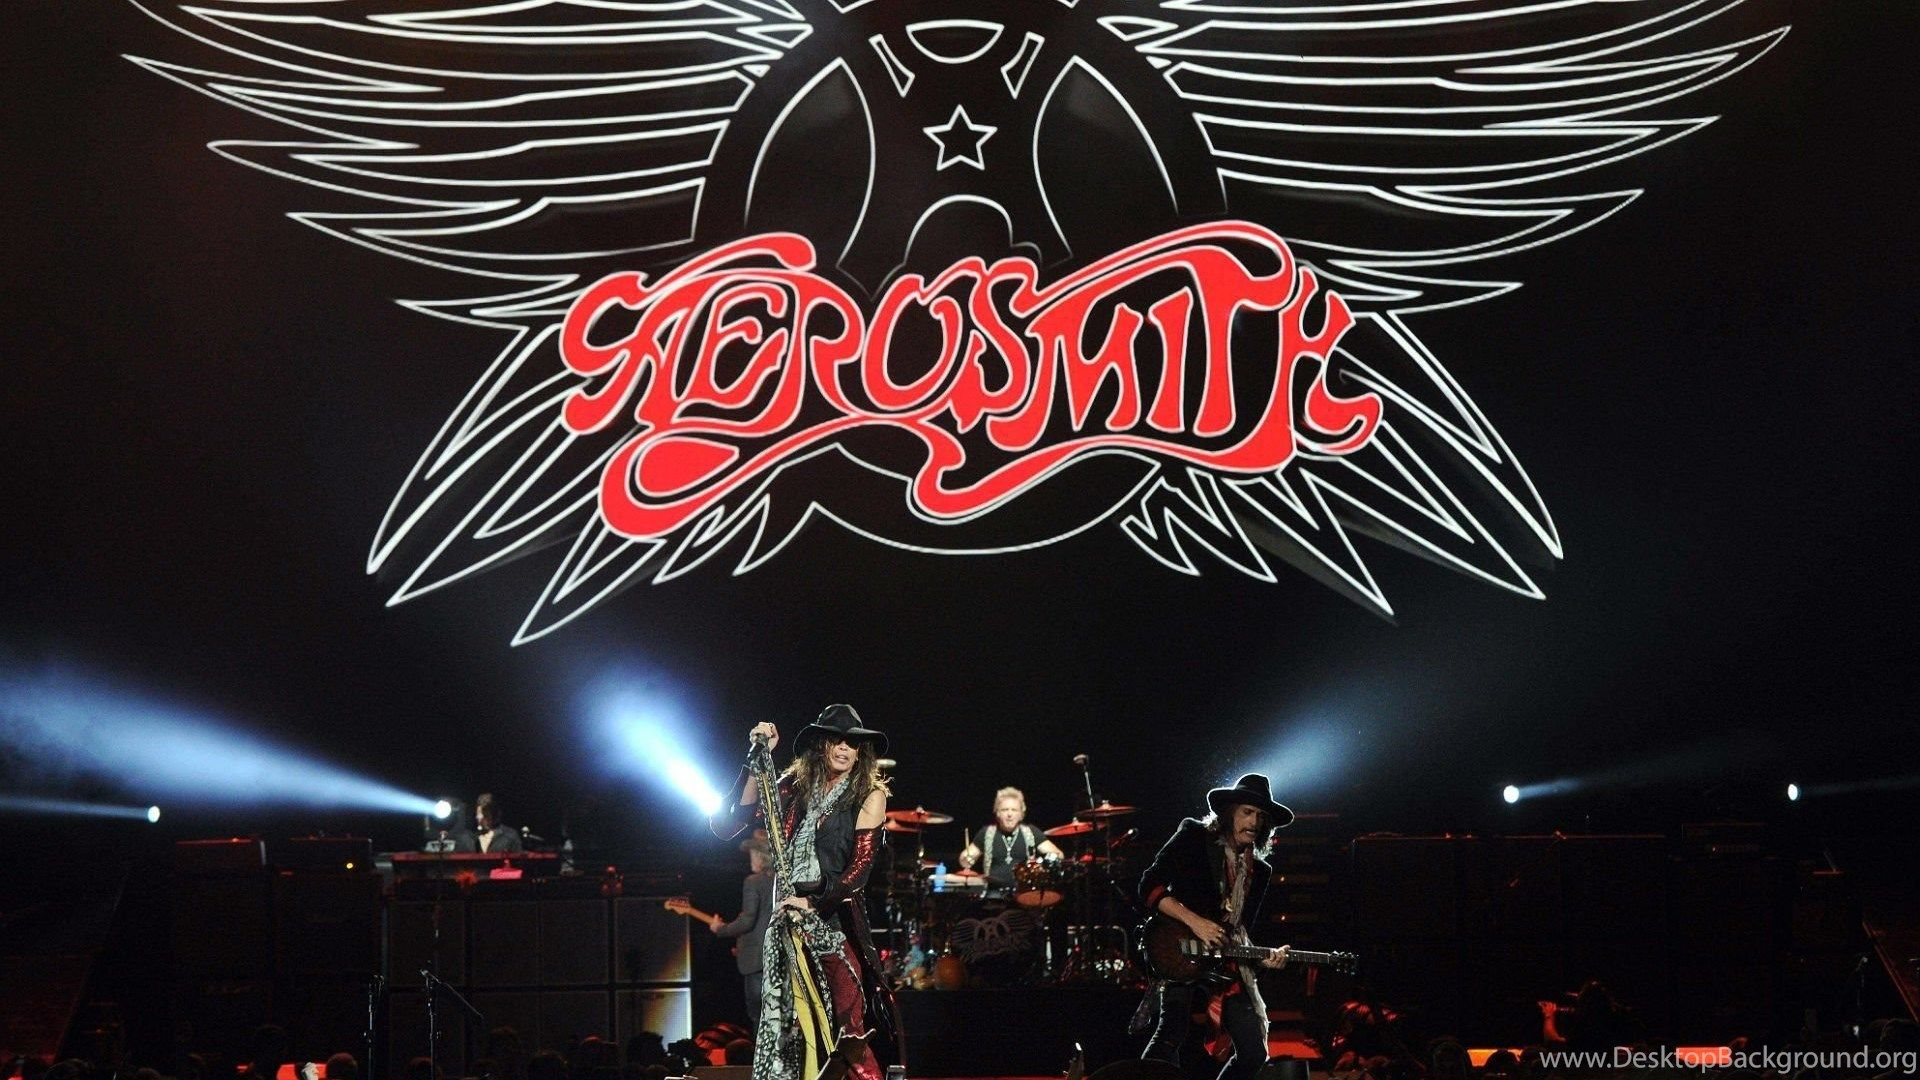 Download Aerosmith Hard Rock Glam Heavy Metal Glam Concert Wallpapers